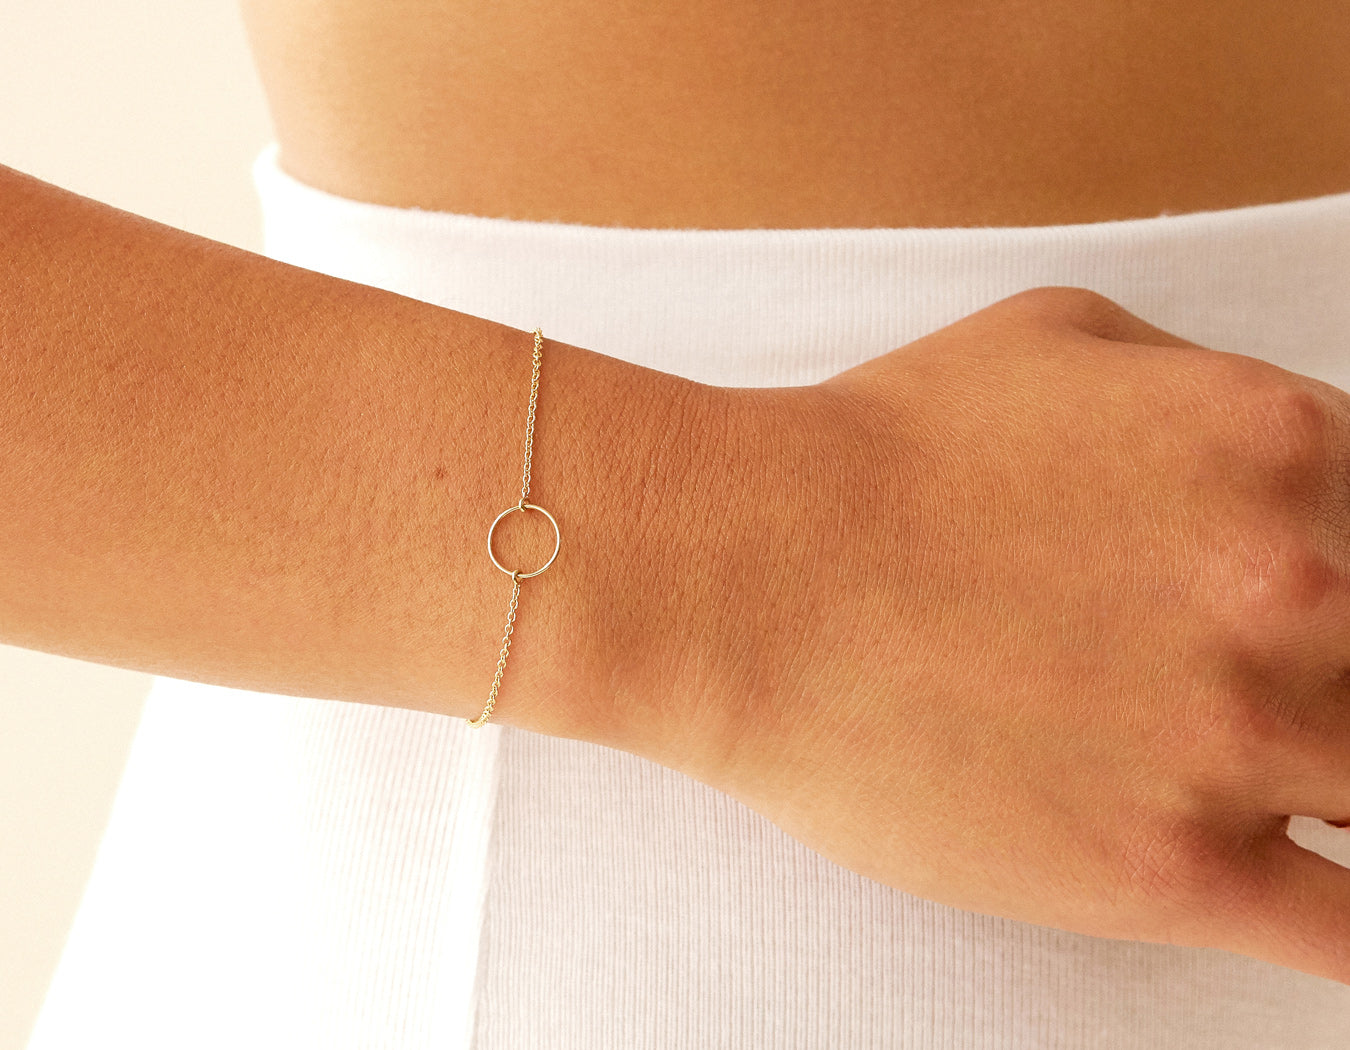 Close up modelling delicate 14k yellow gold Circle Bracelet by Vrai and Oro